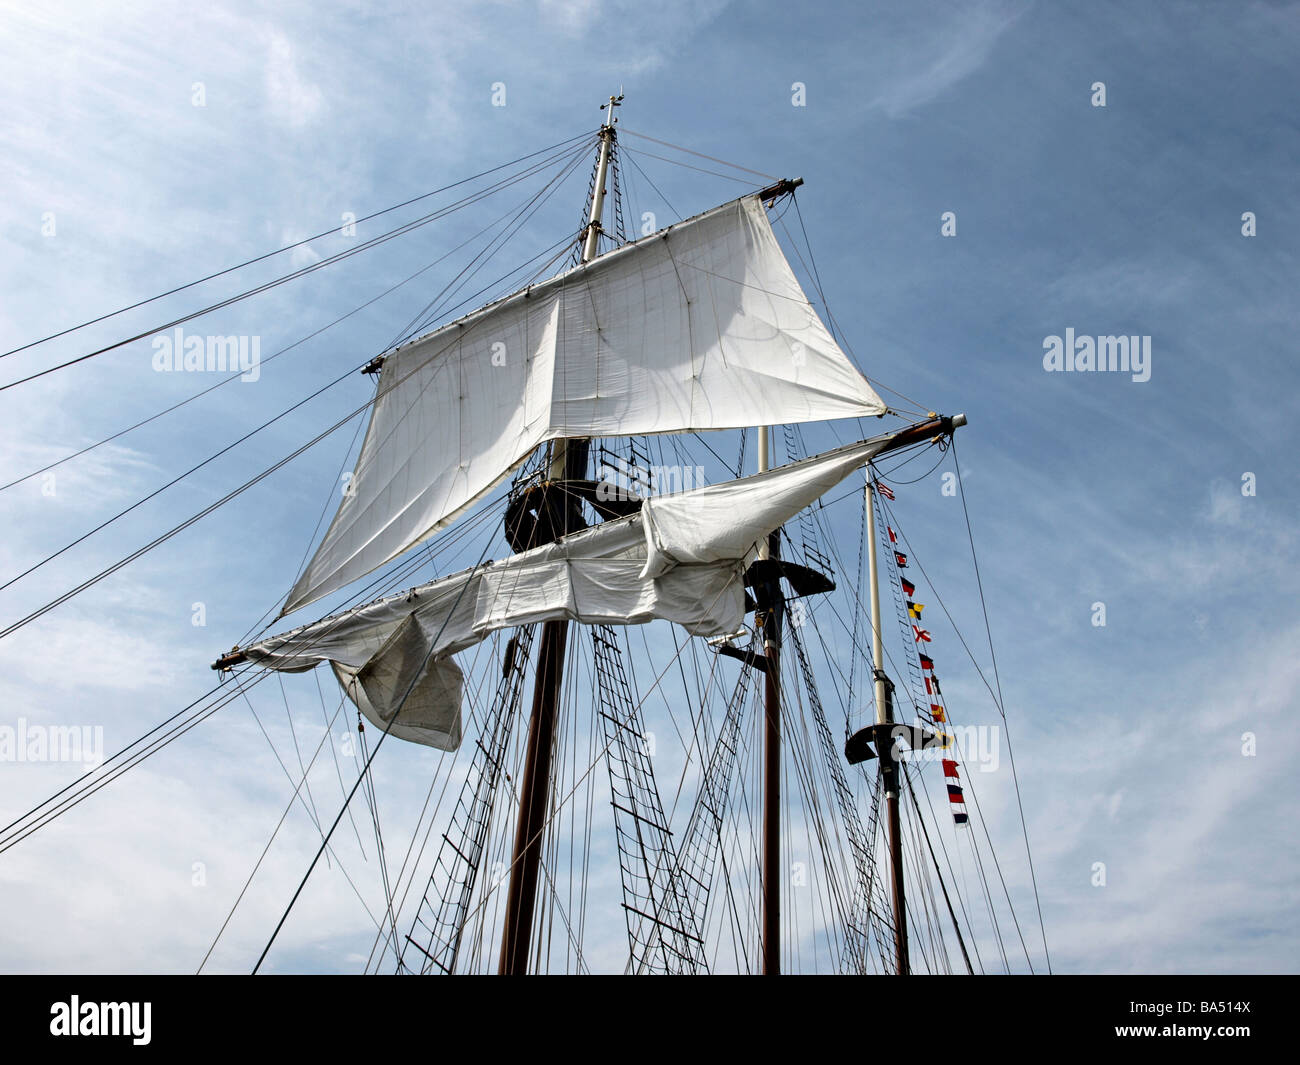 Ship ladders stock photos ship ladders stock images alamy tall ship tall ships three masts with unfurled top sail on mast with ropes sciox Gallery